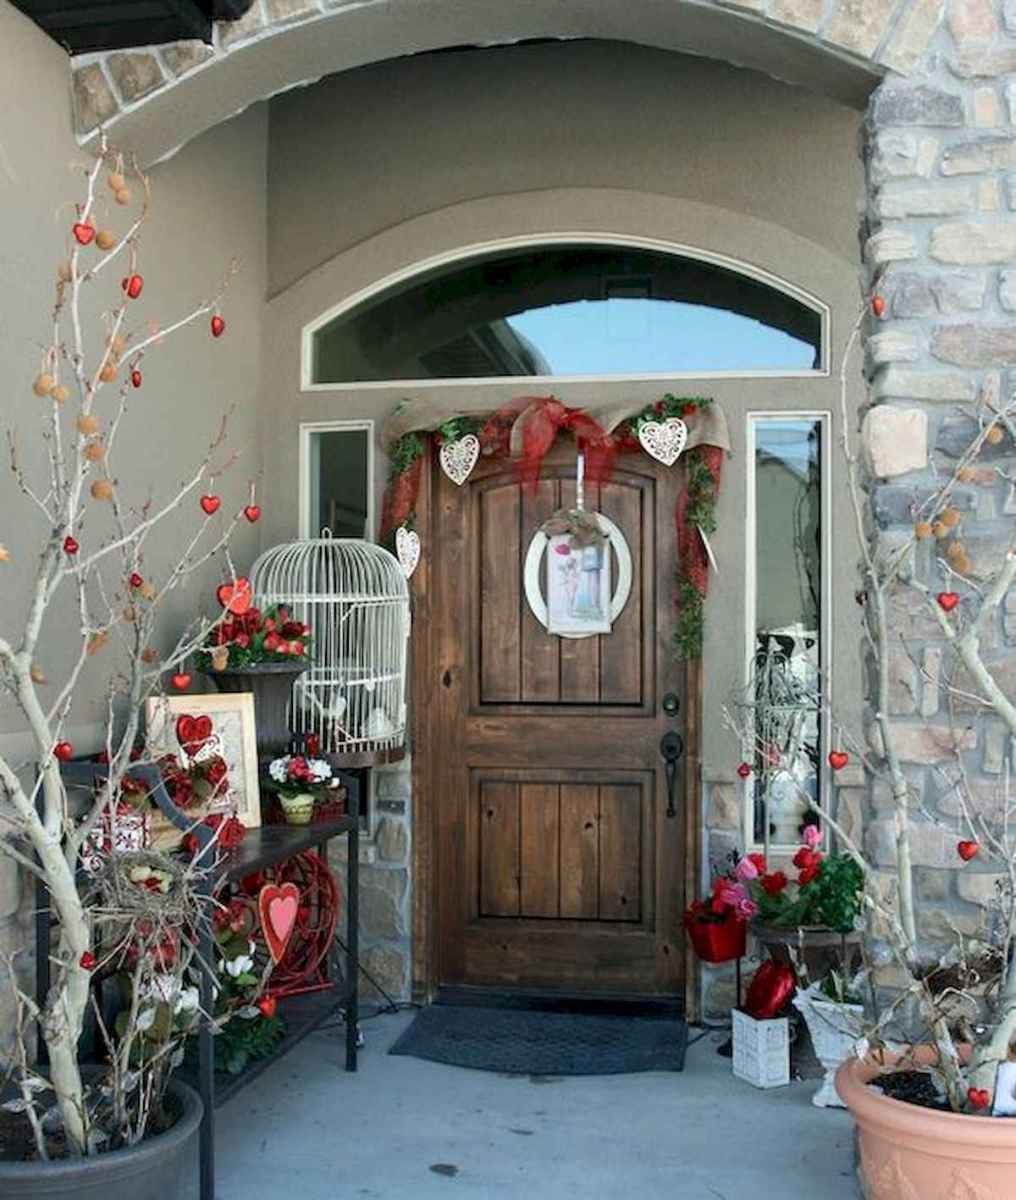 50 Awesome Christmas Front Porch Decor Ideas And Design (44)